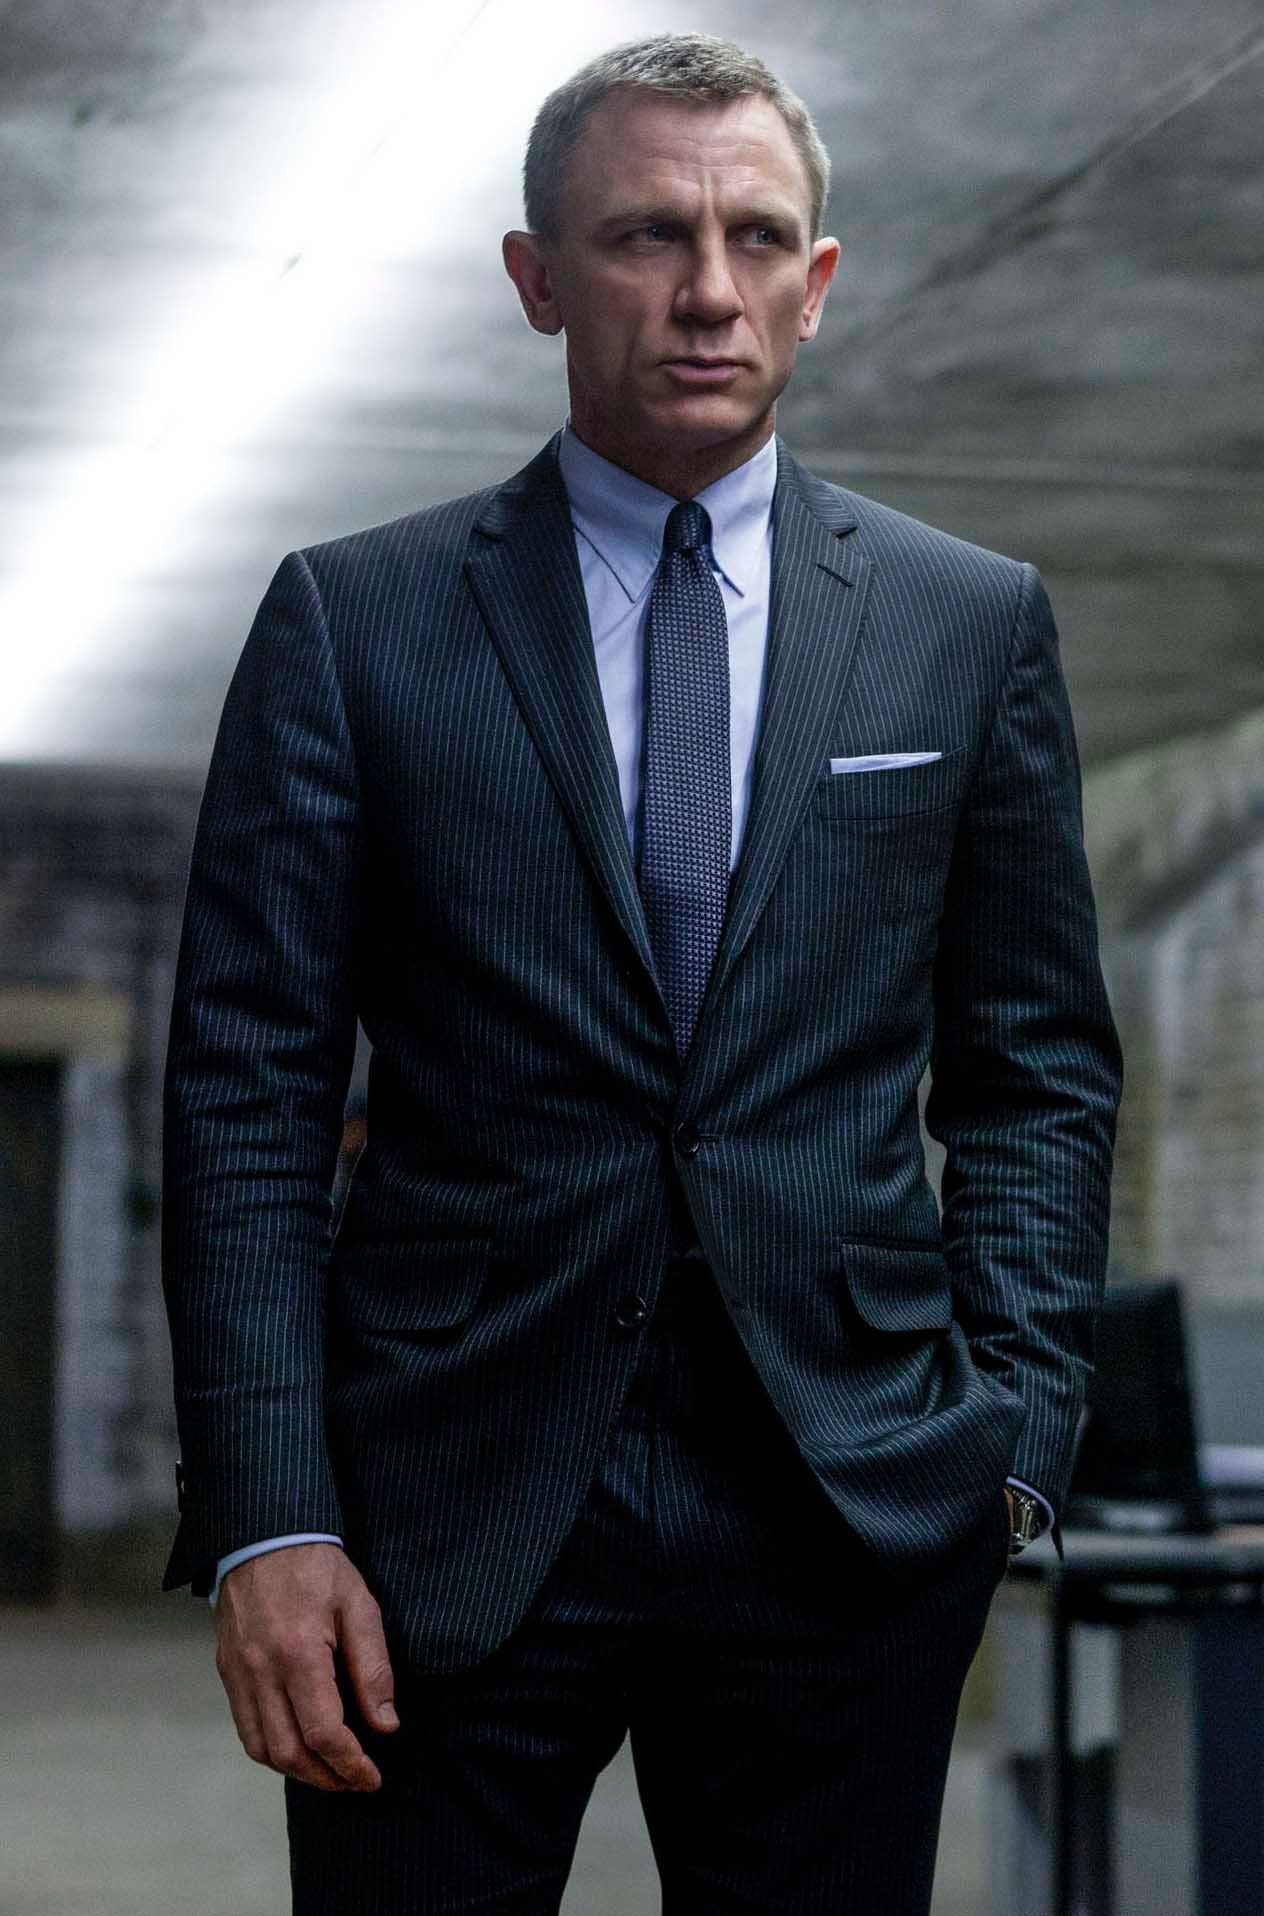 Daniel Craig Filming Skyfall In Tom Ford O Connor Charcoal Suit W